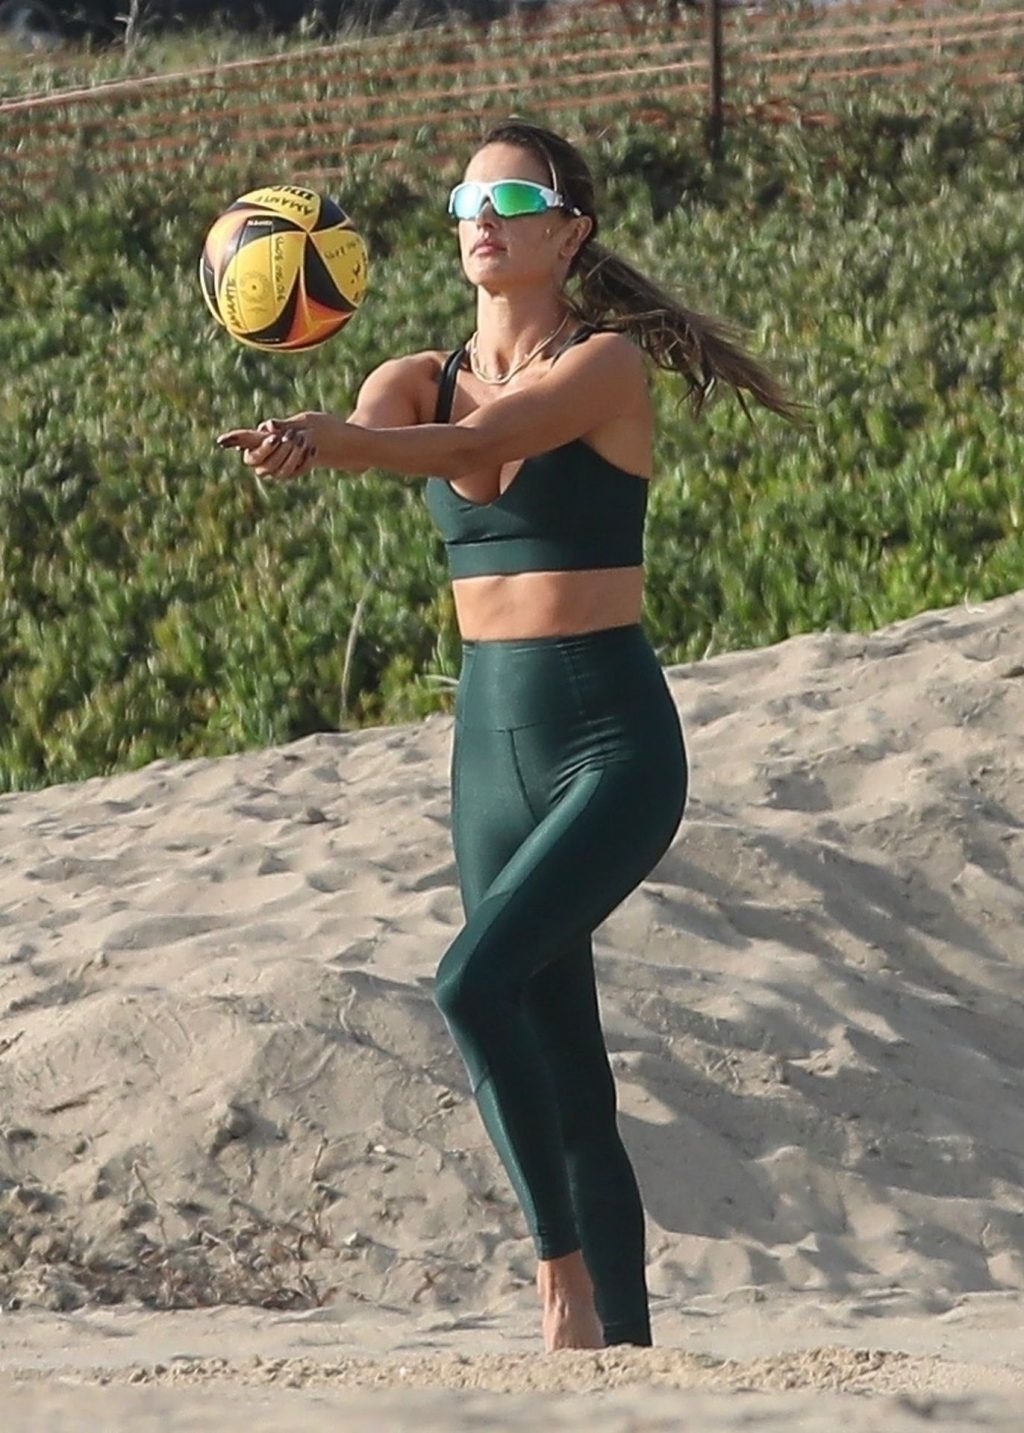 Alessandra Ambrosio Flaunts Her Perfect Body During a Volleyball Class (65 Photos)